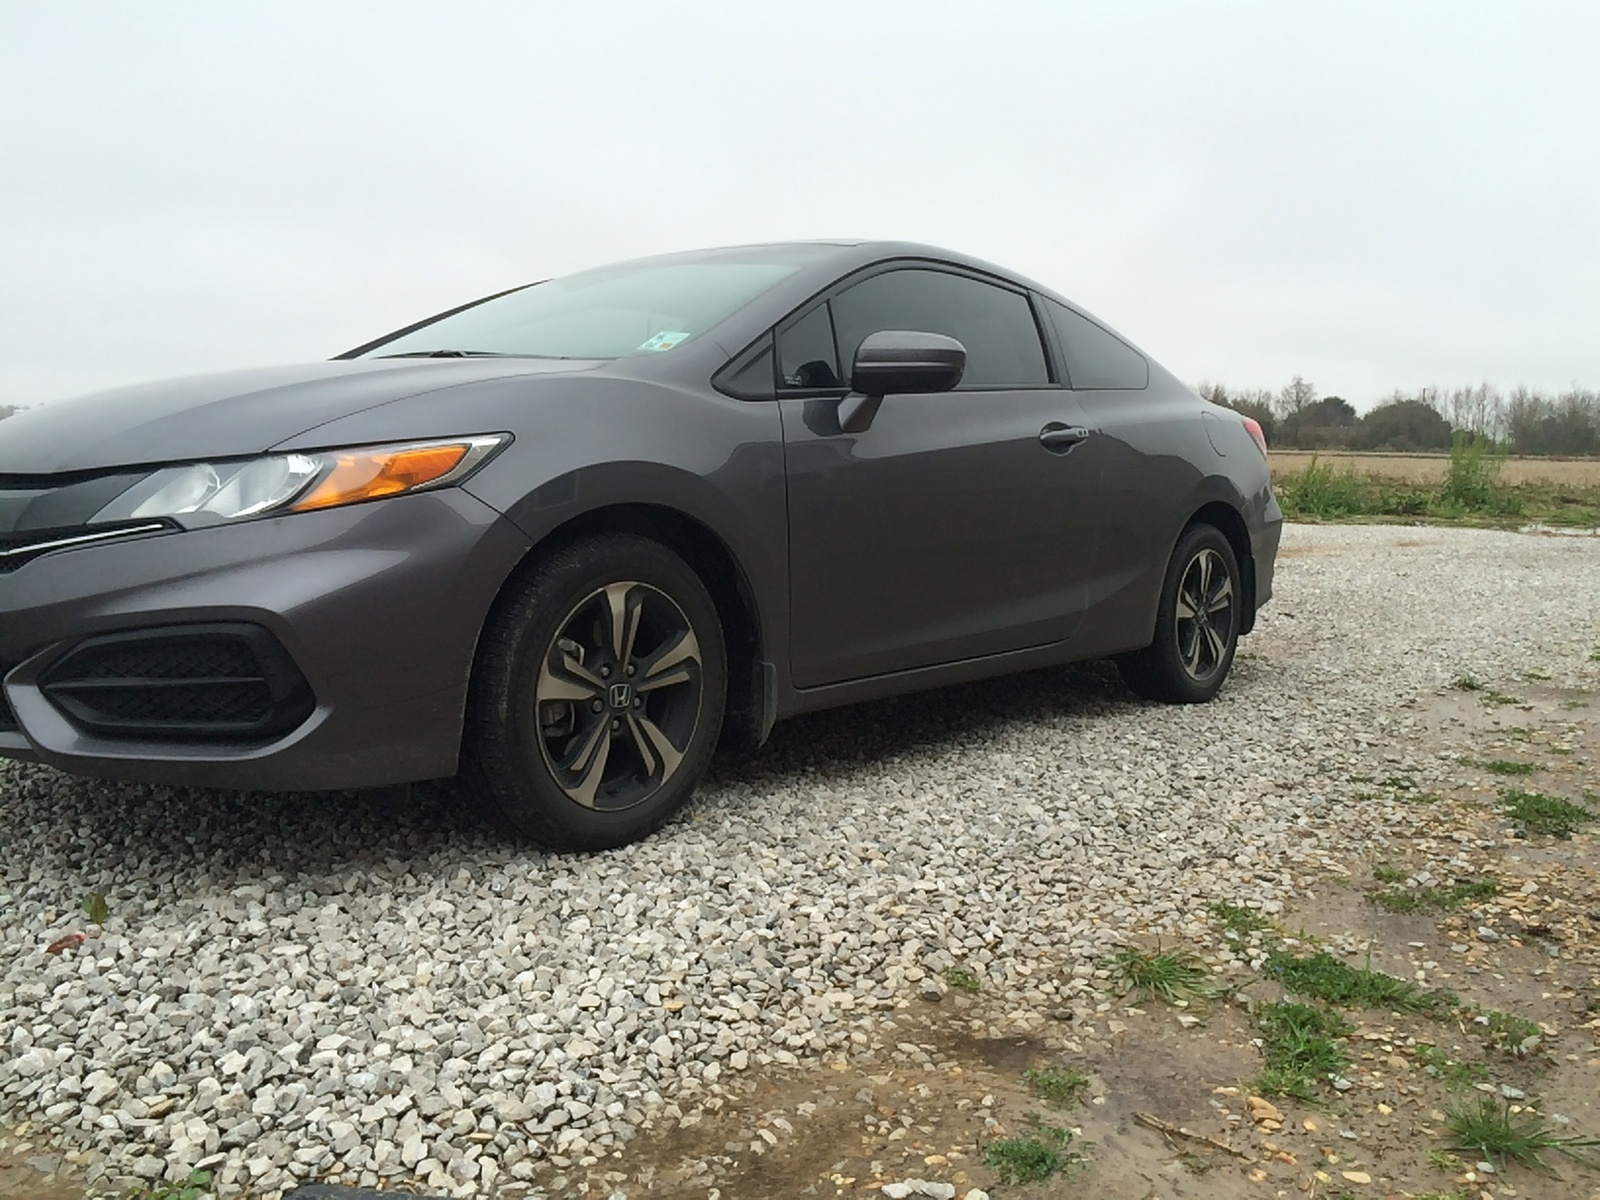 New 2015 honda civic coupe for sale cargurus for Honda civic 2015 for sale